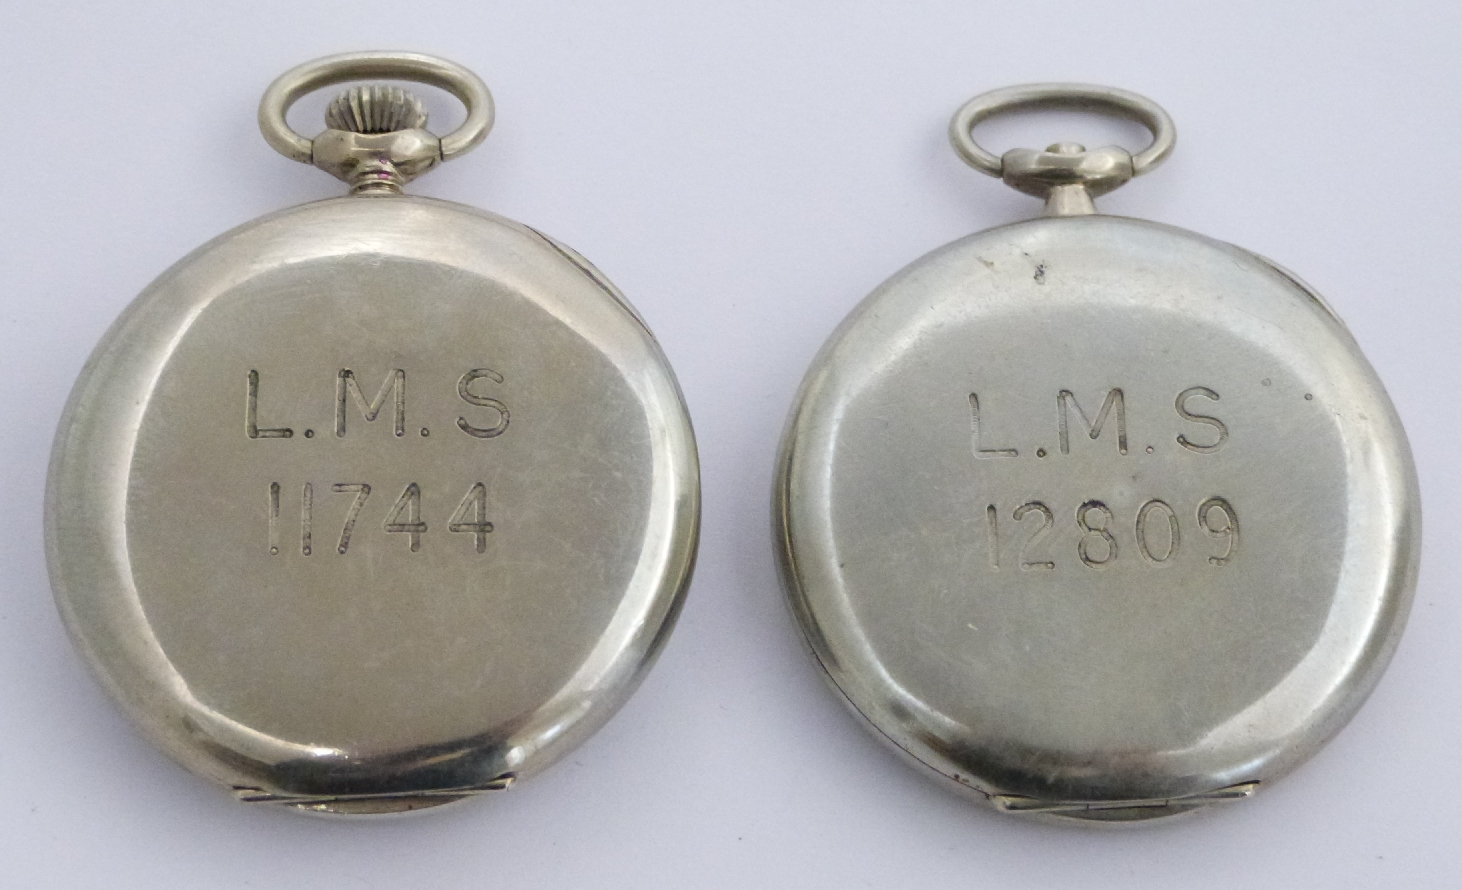 Lot 40 - Two London Midland and Scottish railway keyless winding open faced pocket watches each with